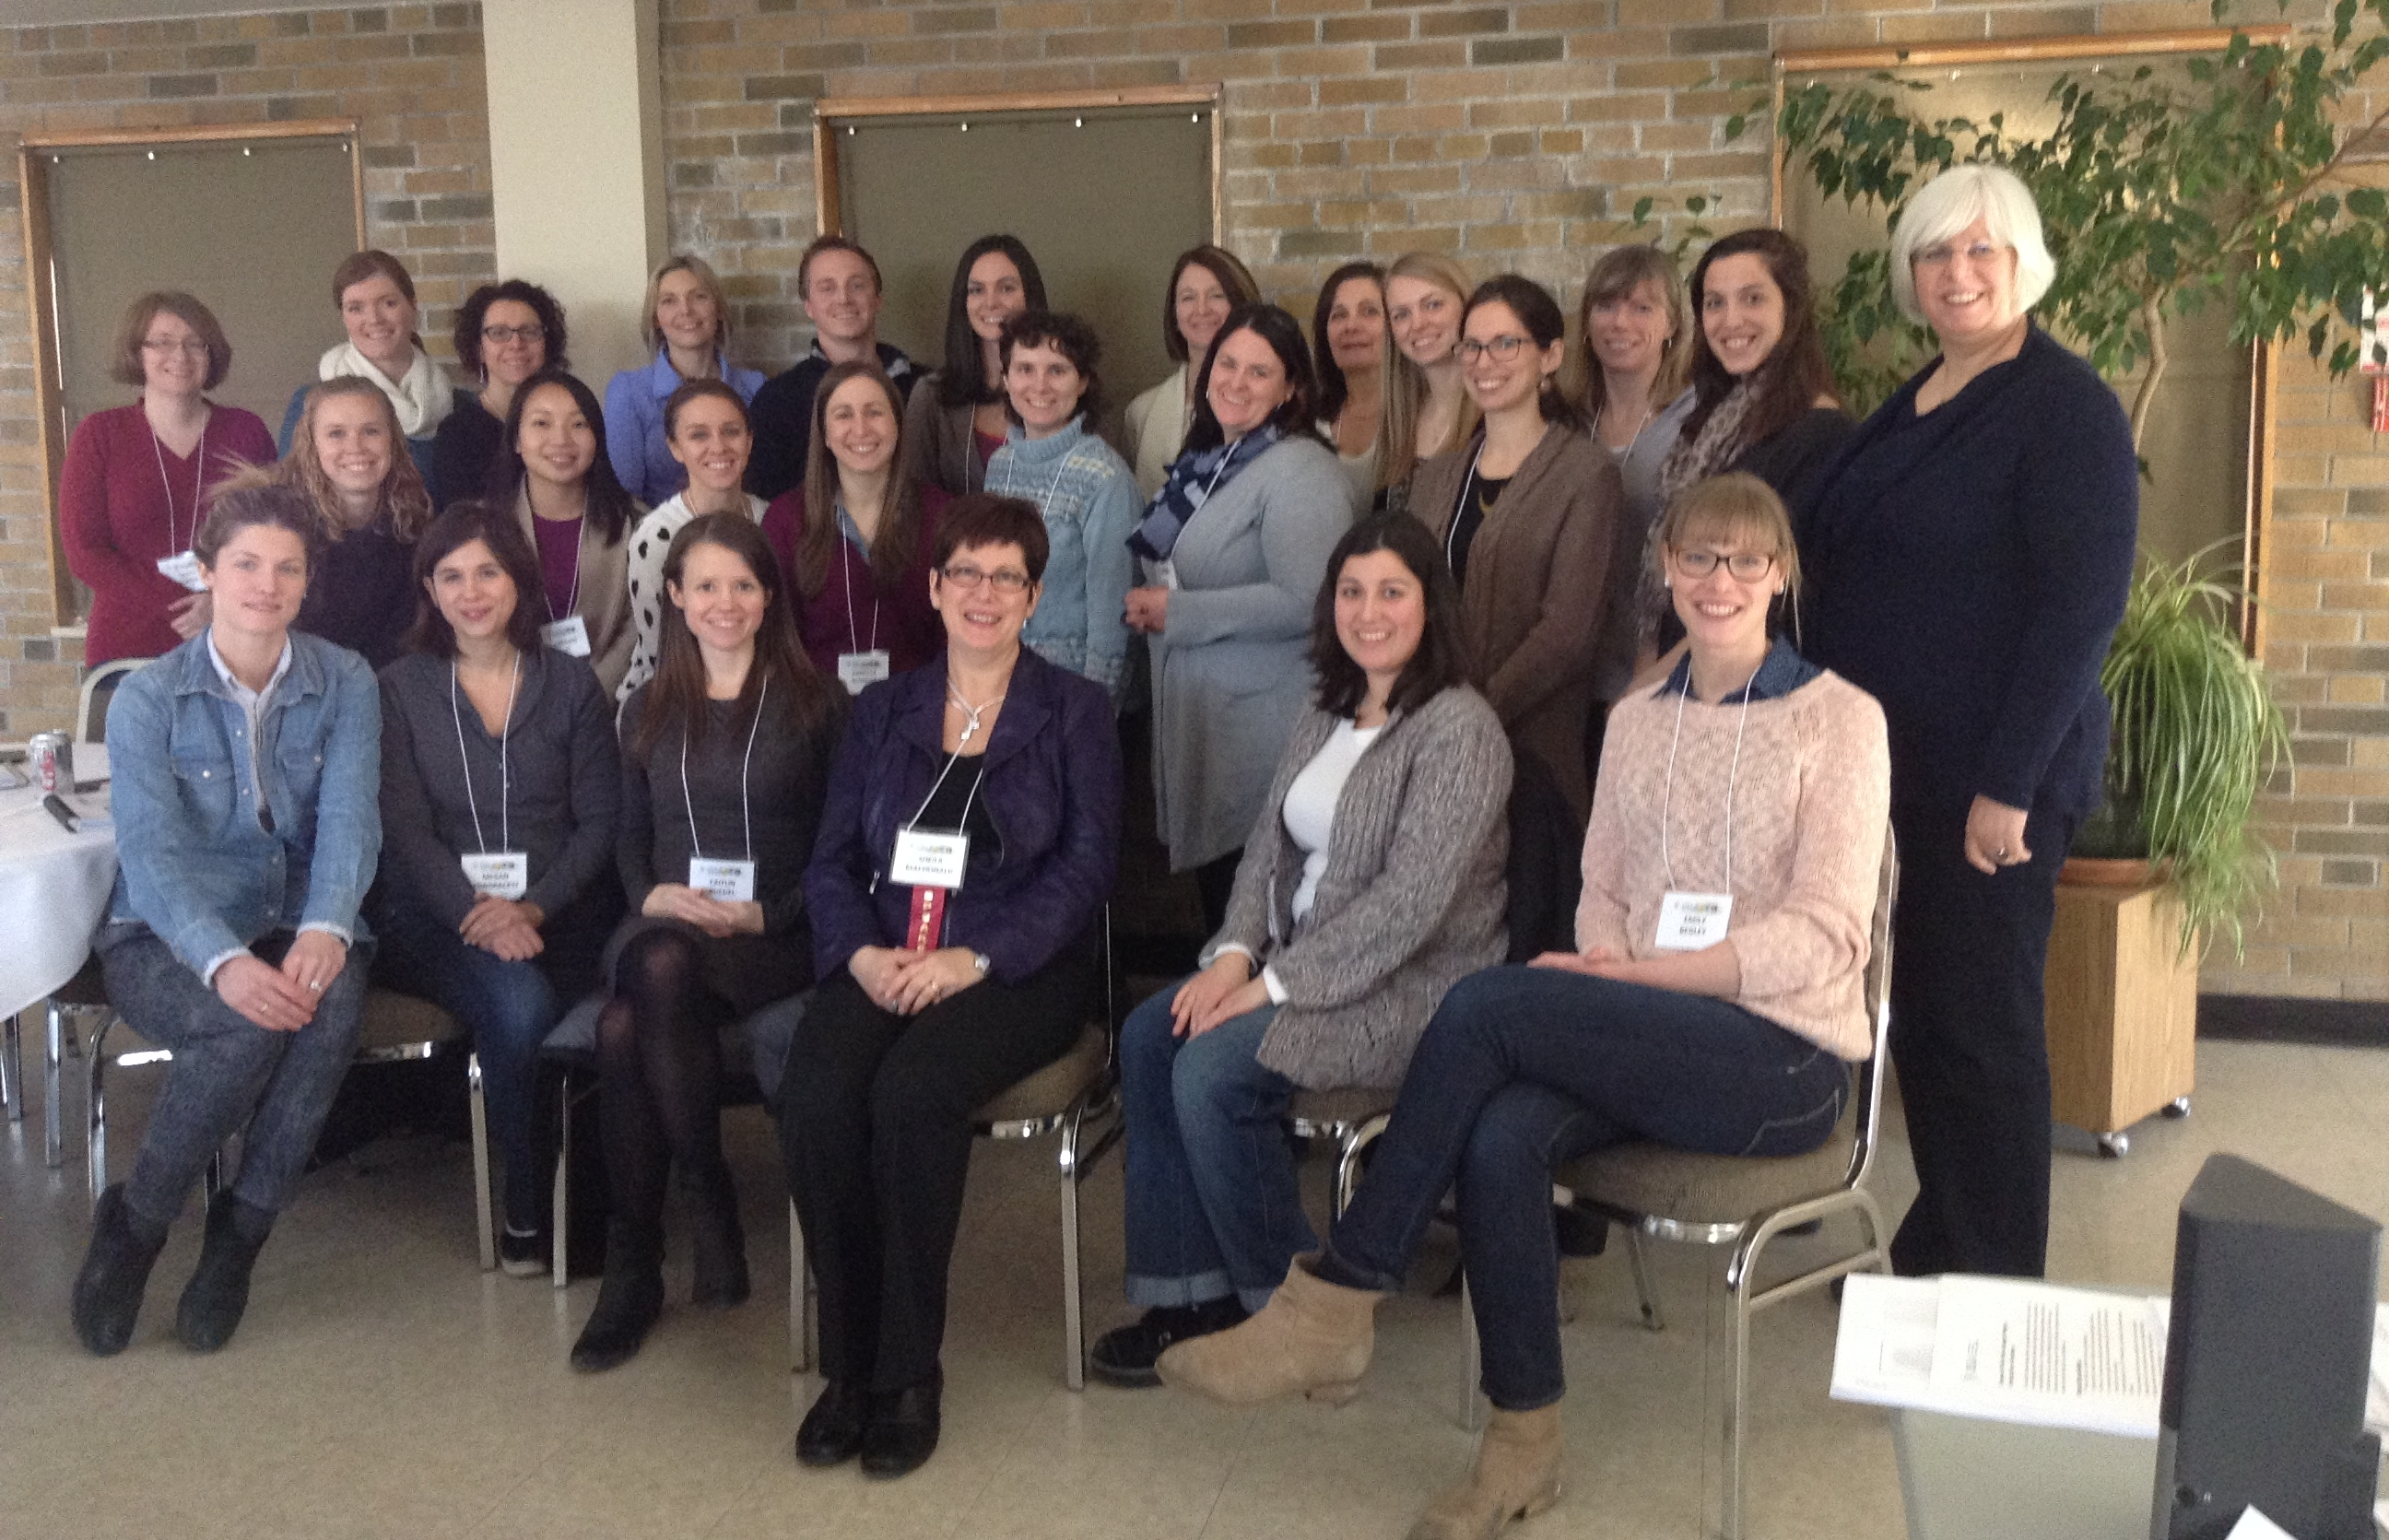 Sheila MacDonald with colleagues at a speech language pathology conference in Toronto, Ontario.